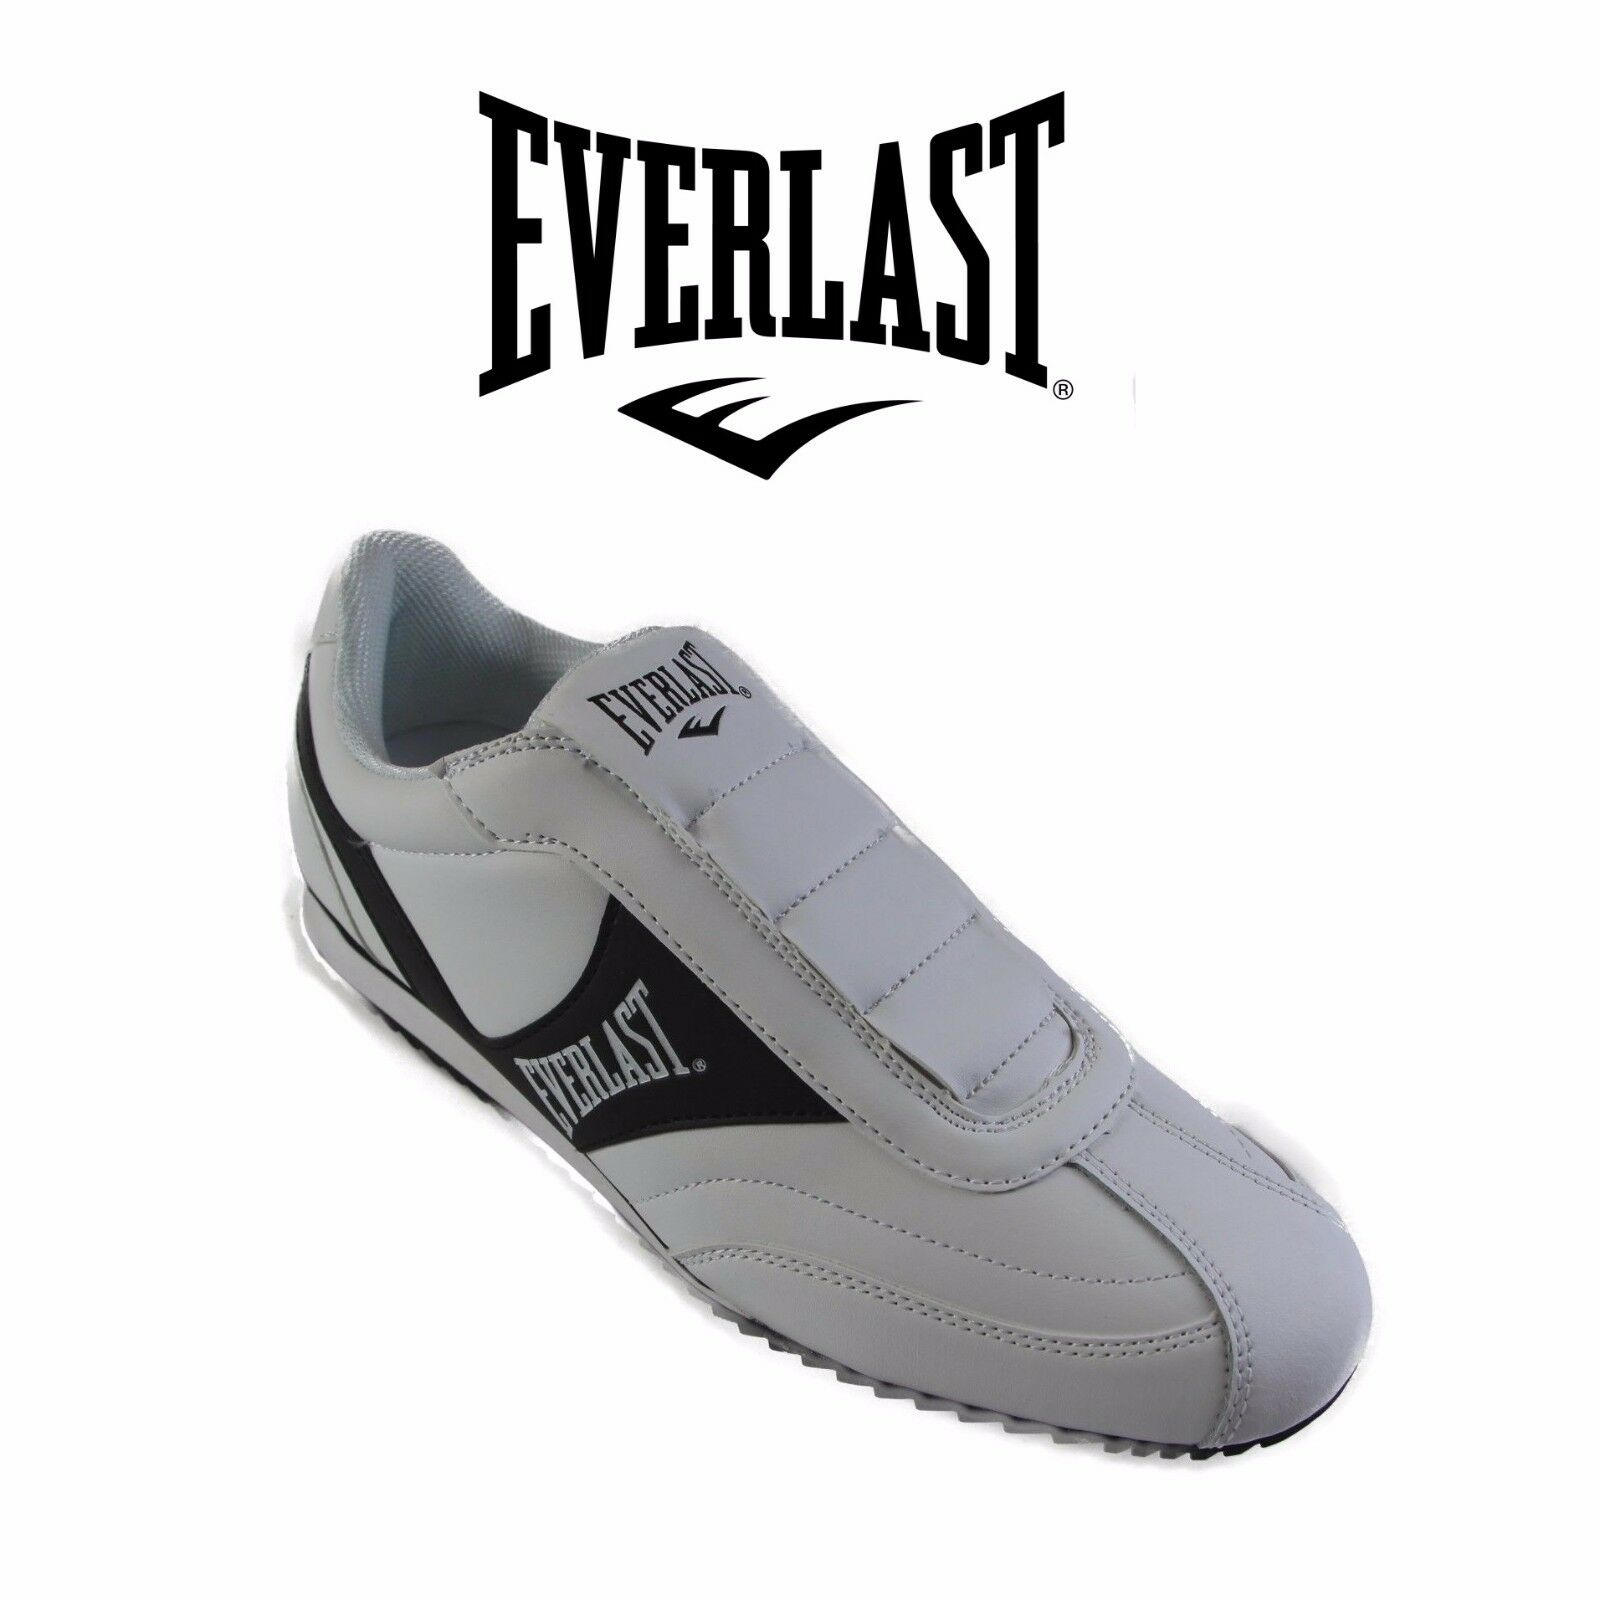 MENS EVERLAST TEMPO ATHLETIC SNEAKERS RUNNERS SHOES White Black